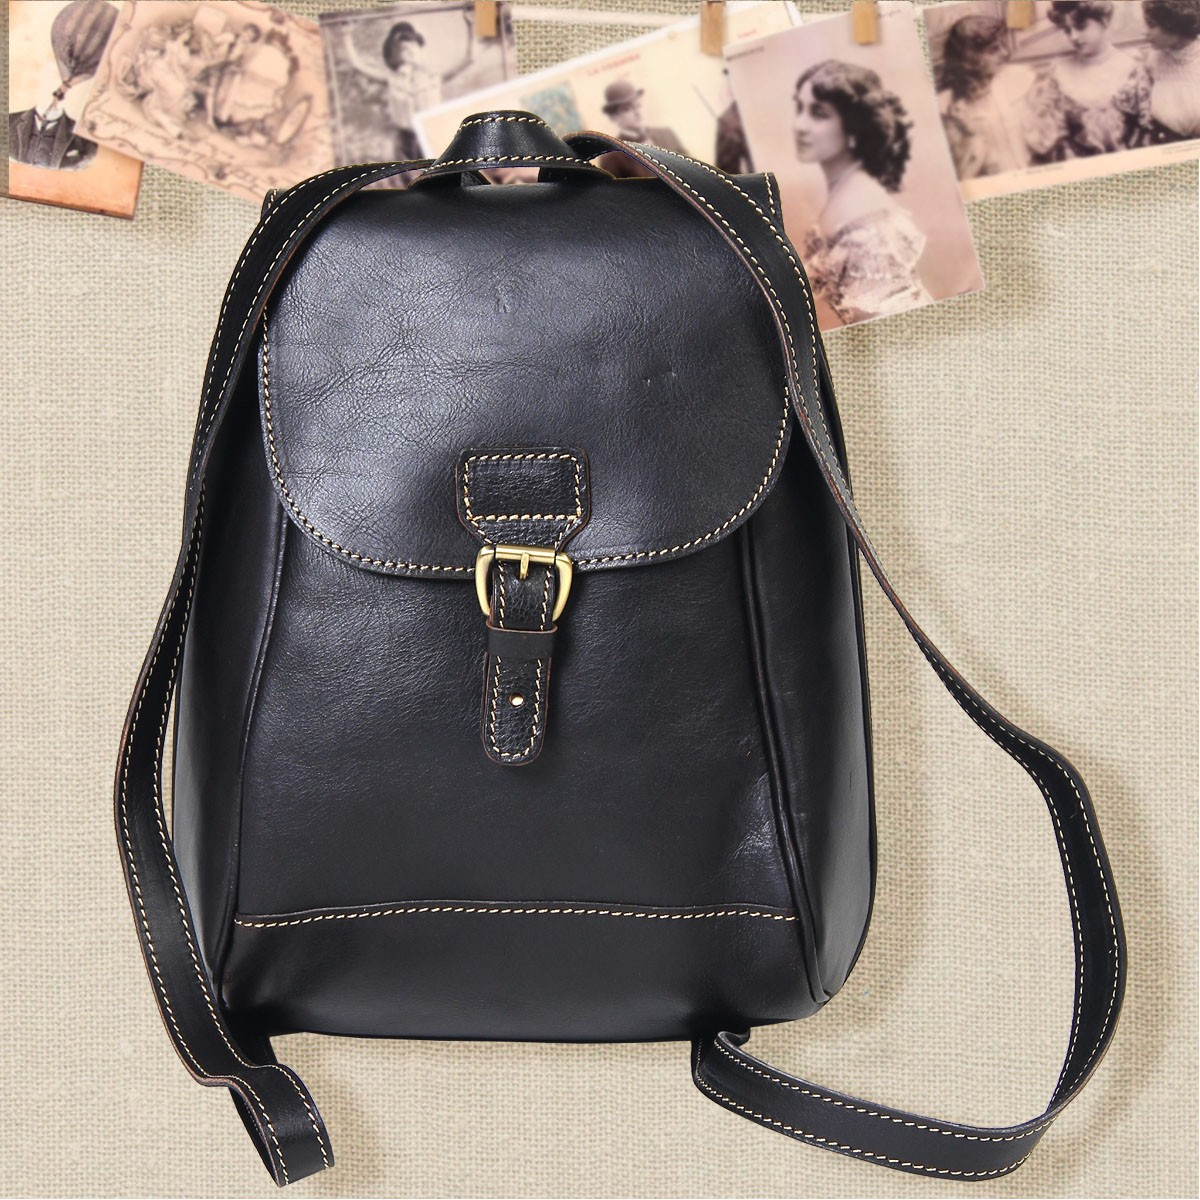 Small Black Leather Backpack FBMTPBHZ